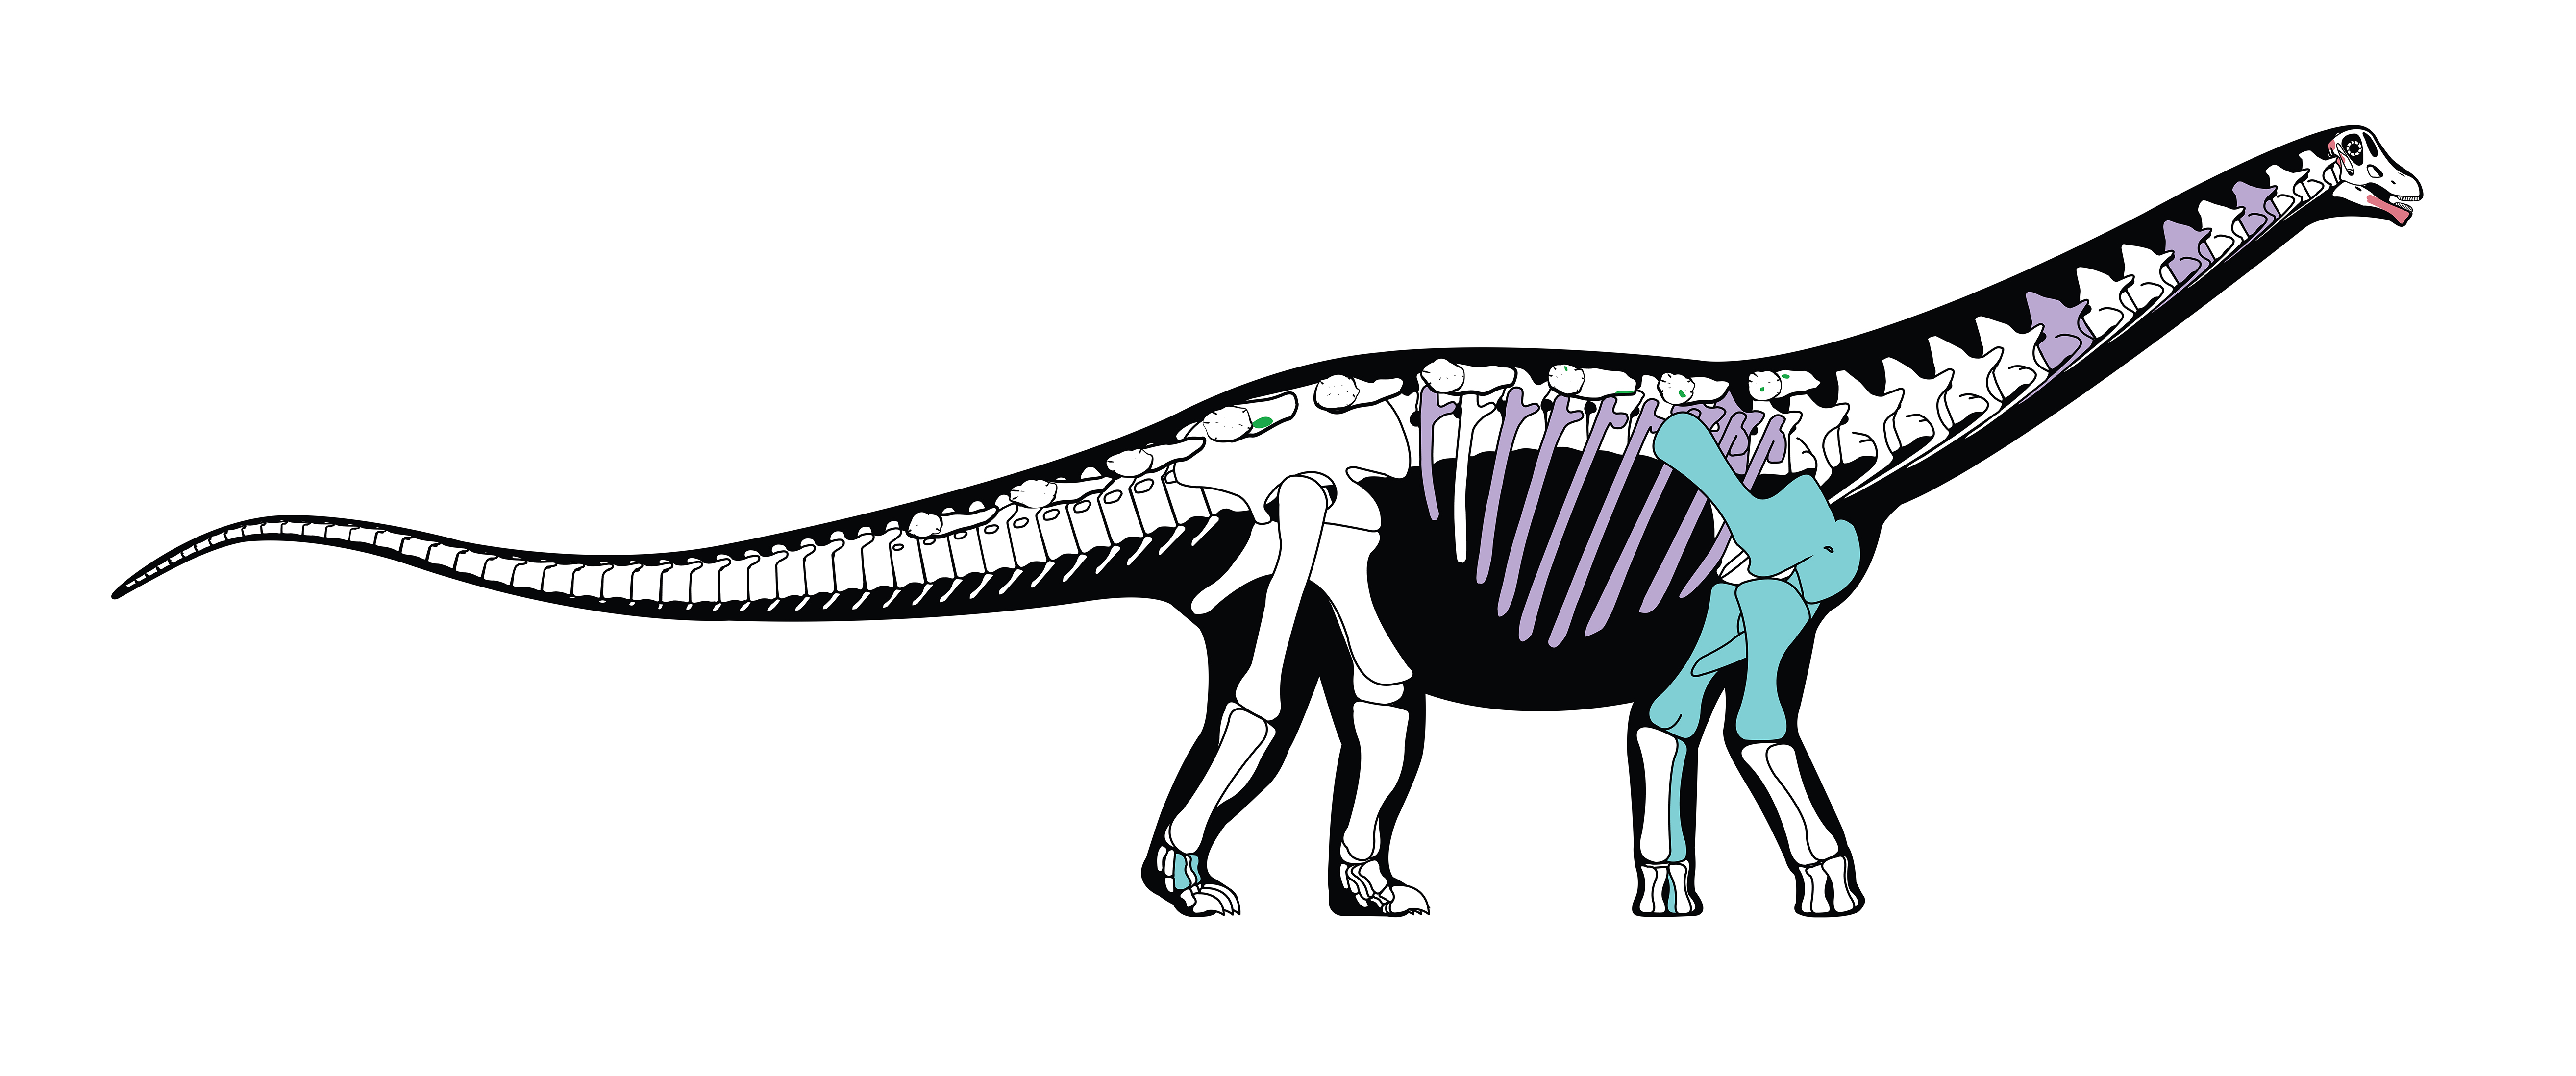 Mansourasaurus- A story from the land of Pharaoh and